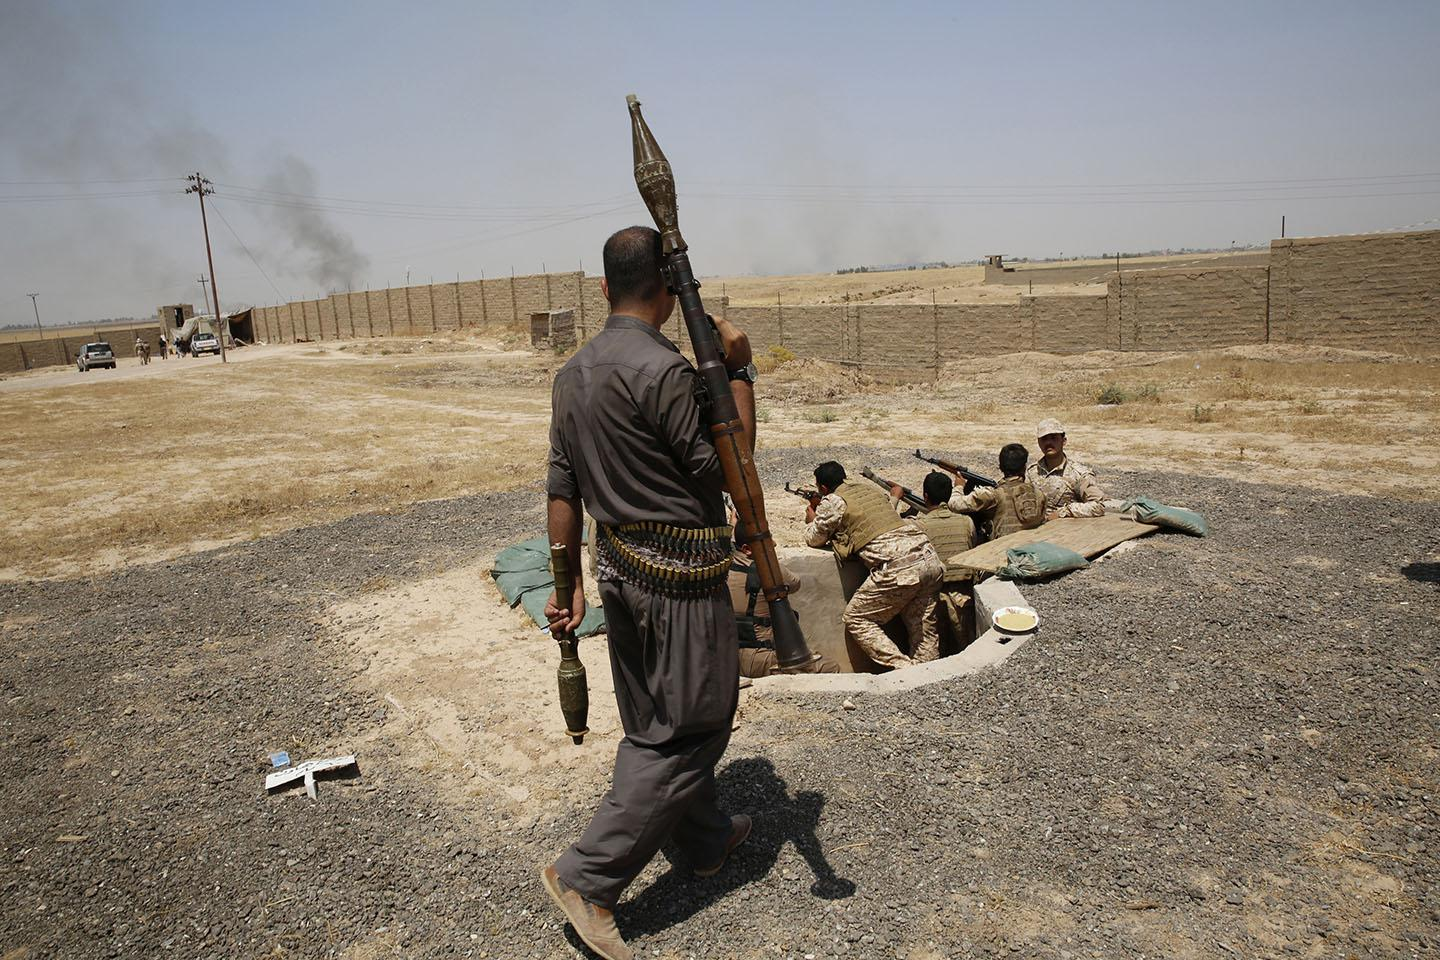 Members of Kurdish security during clashes with ISIS militants in the village of Basheer, south of the city of Kirkuk, June 29, 2014.